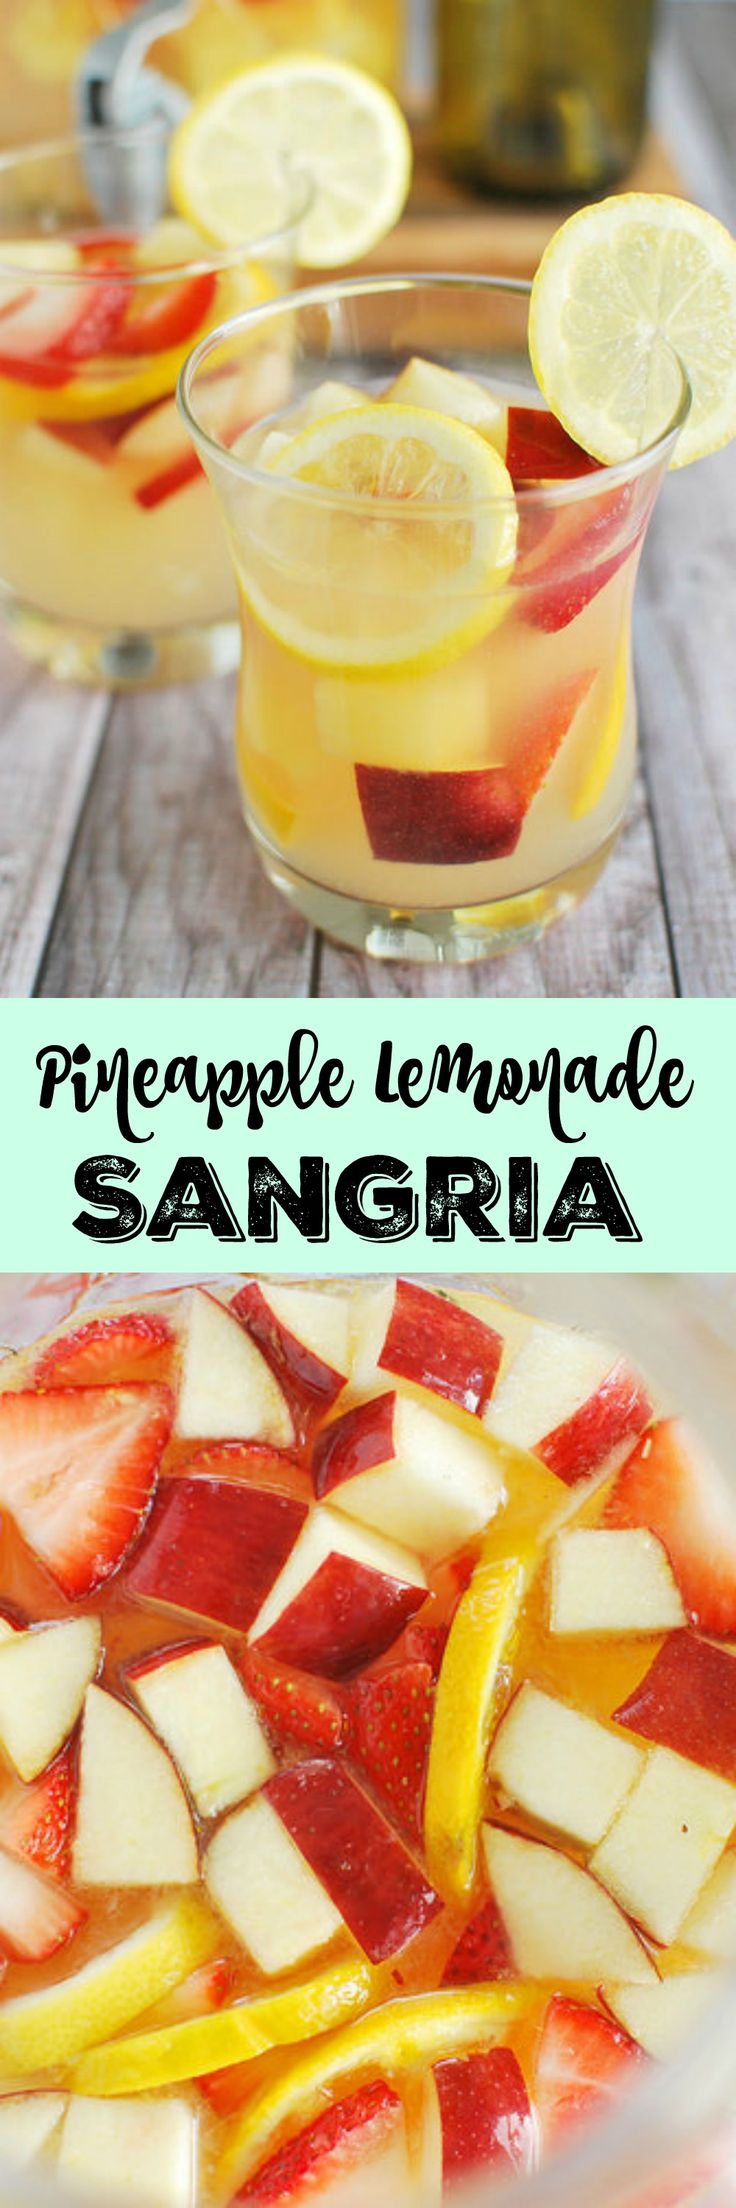 Pineapple Lemonade Sangria - the ultimate summer drink recipe! White wine, lemonade, and rum with tons of fresh fruit mixed in!: